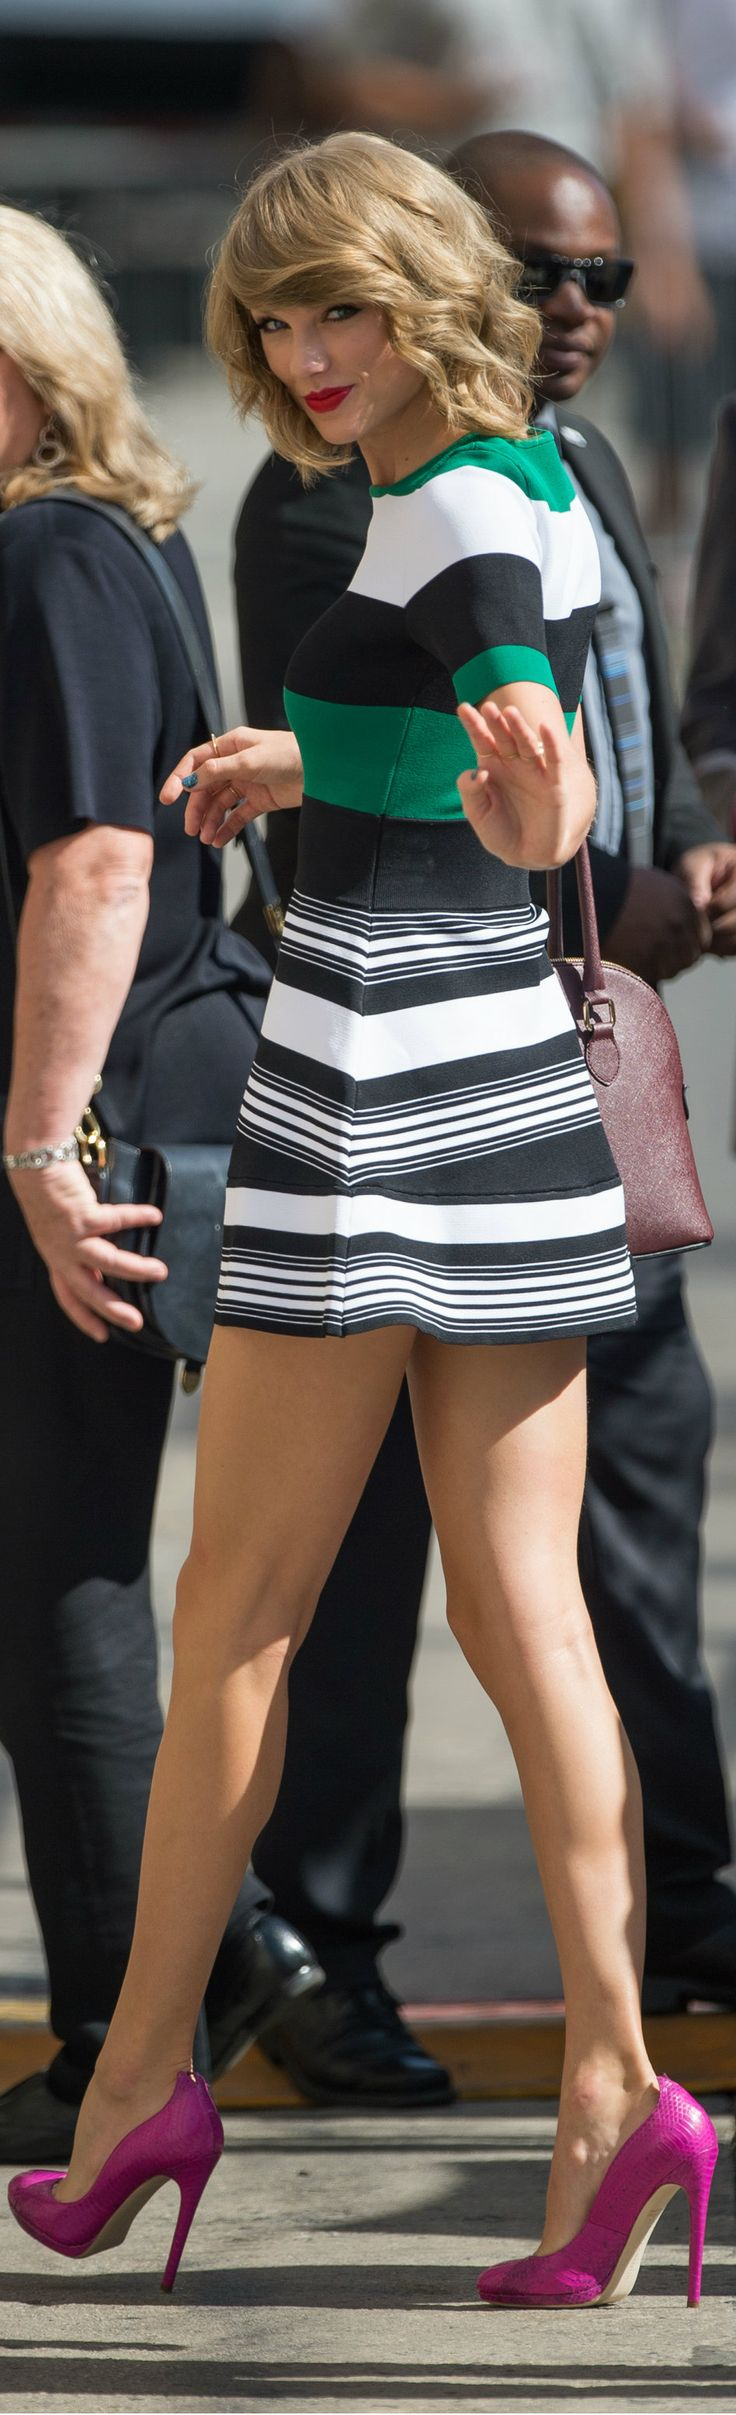 Taylor Swift style: striped shirt and skirt